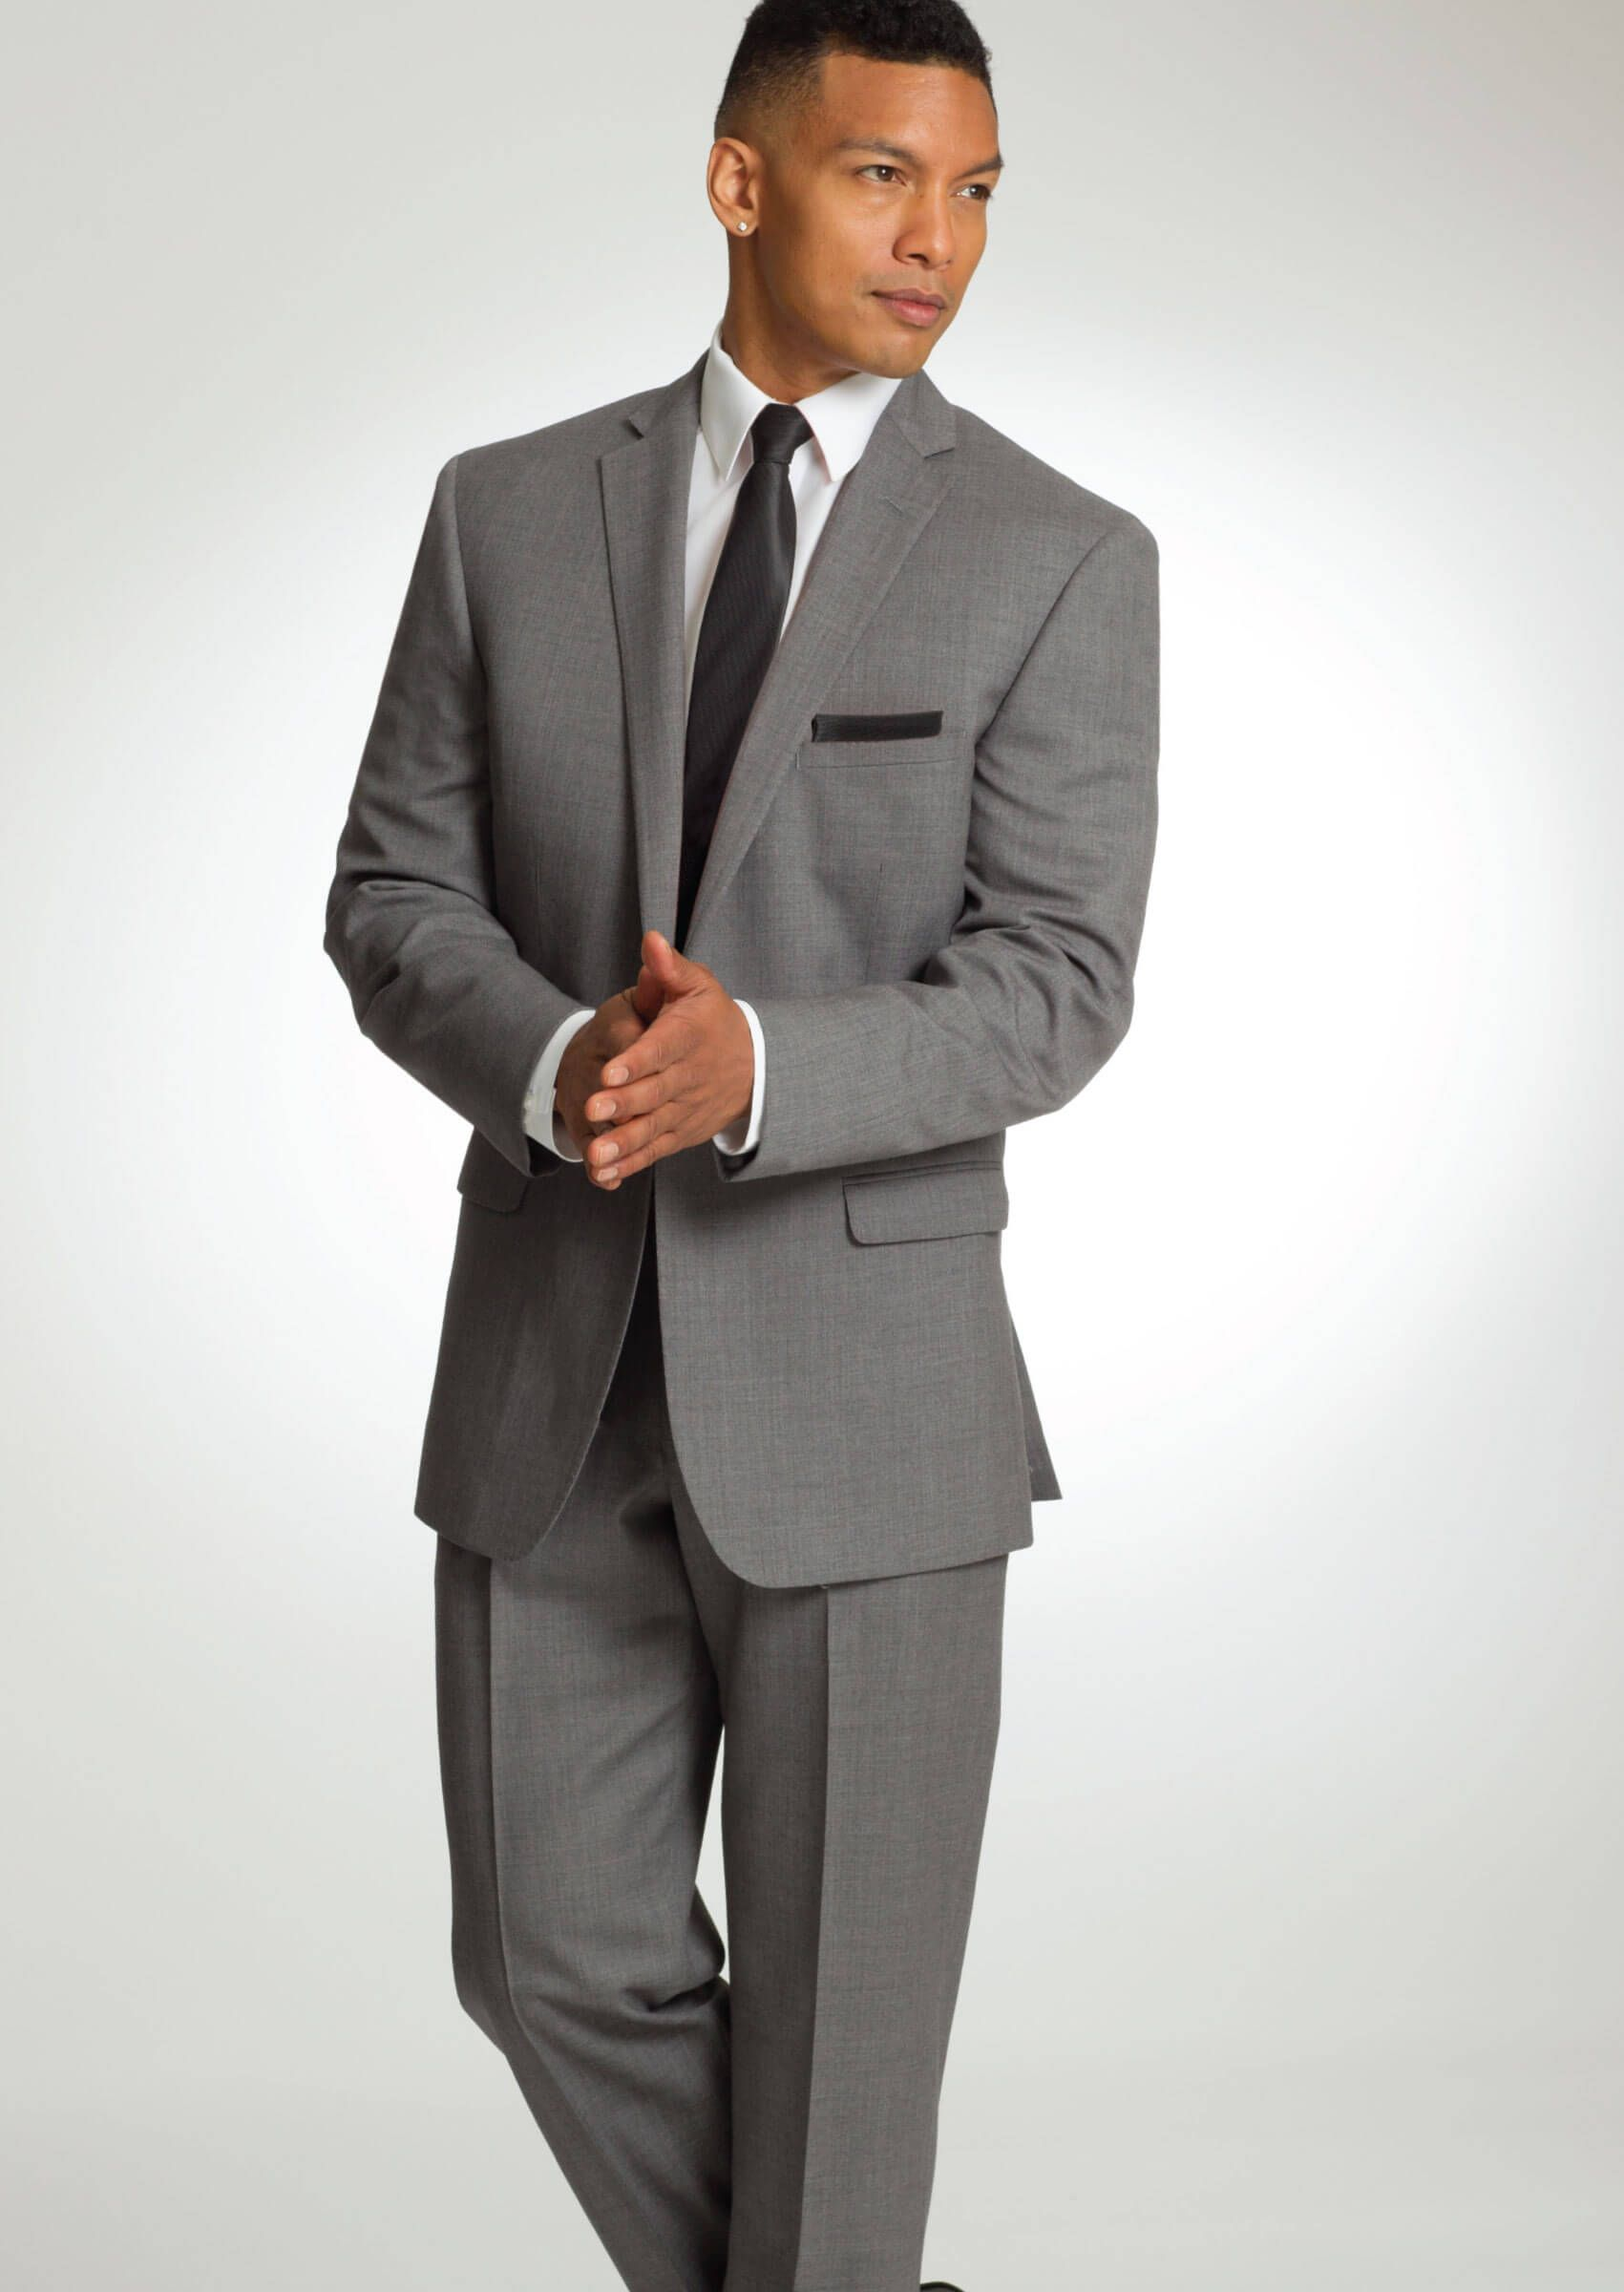 Grey Valencia One Button Notch Dress Suit by Savvi - Tuxedos ...